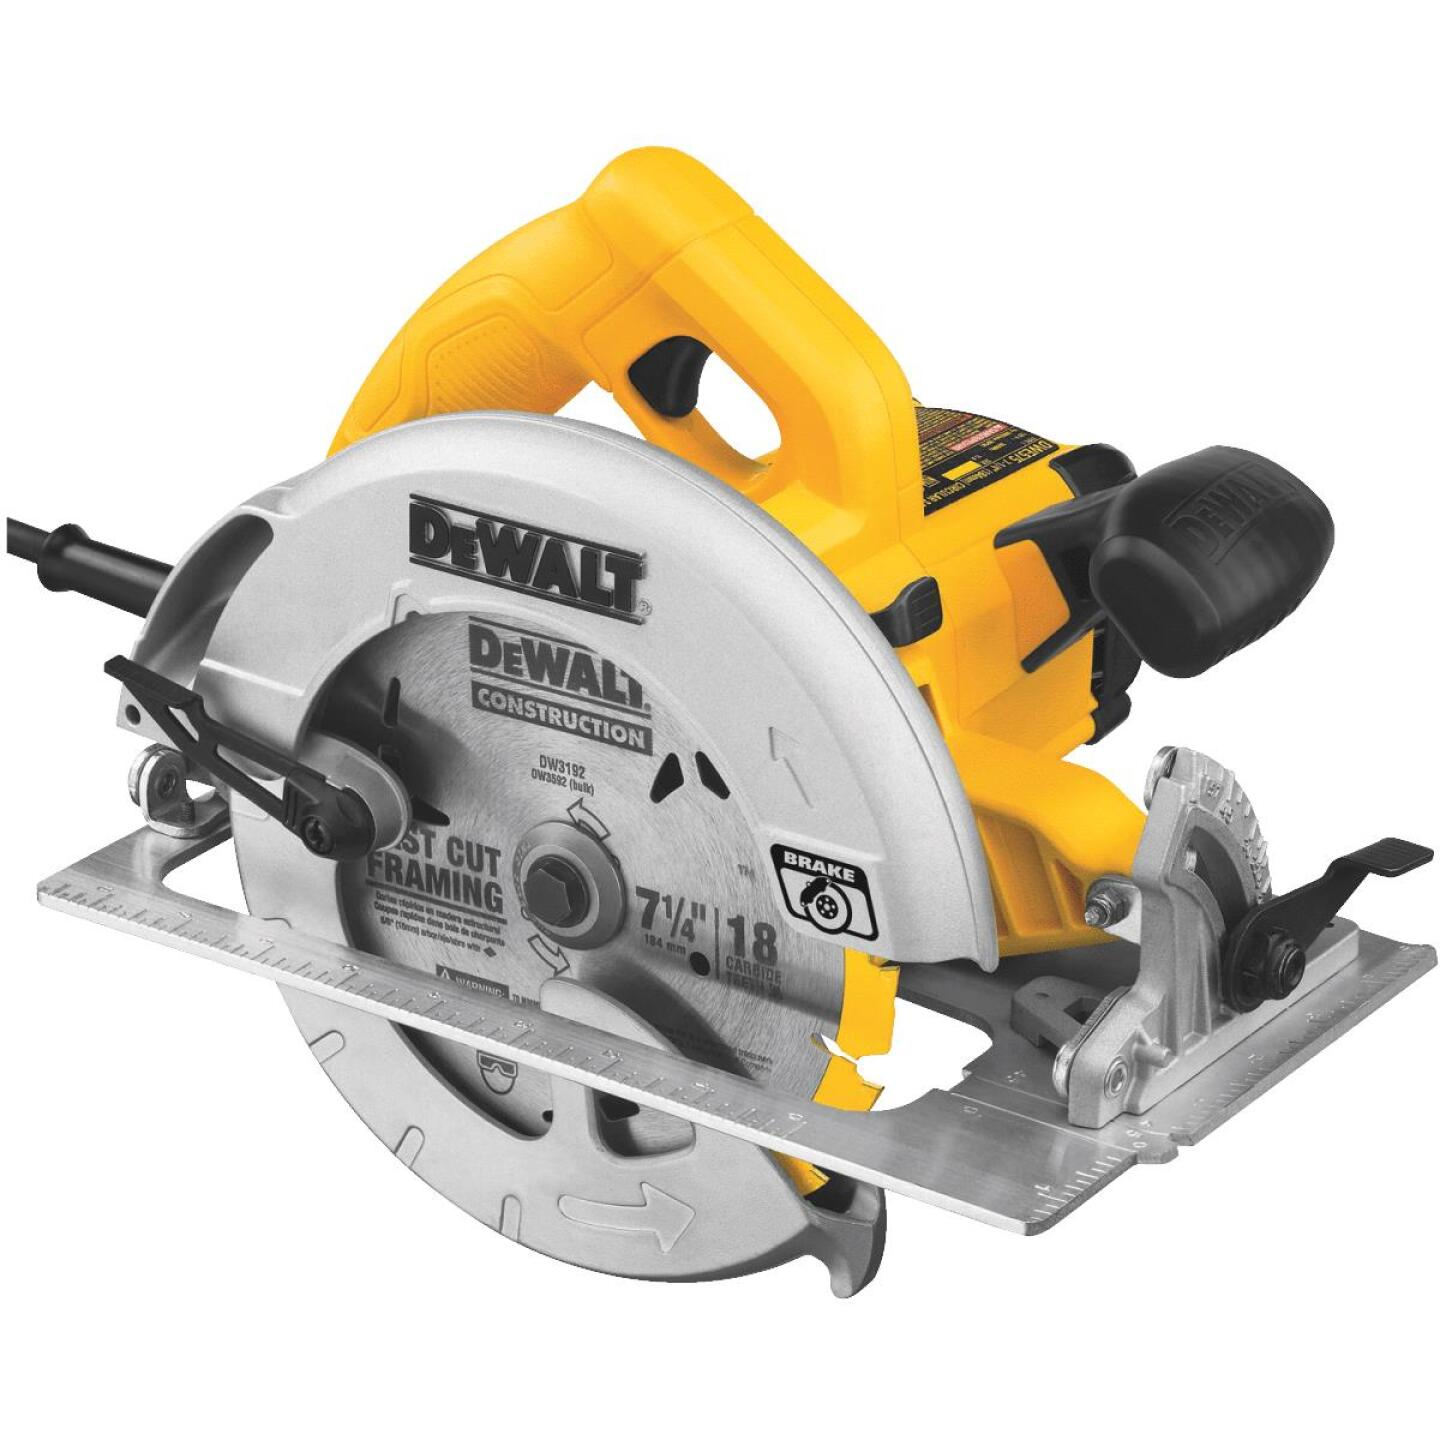 DeWalt 7-1/4 In. 15-Amp Lightweight Circular Saw Image 1